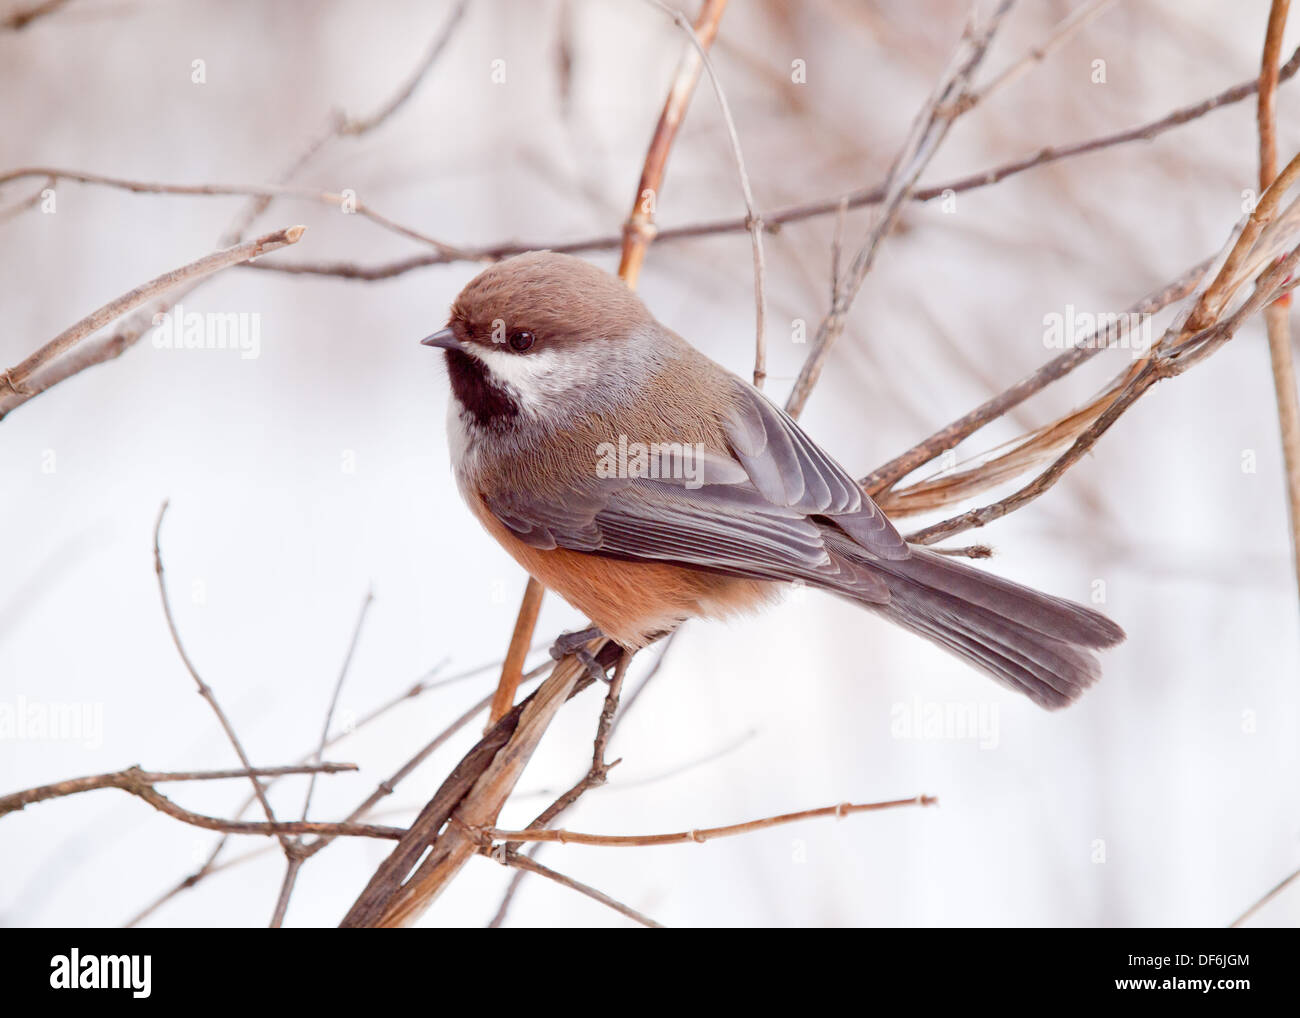 A perched Boreal Chickadee (Poecile hudsonicus) in the wintertime. Edmonton, Alberta, Canada. - Stock Image